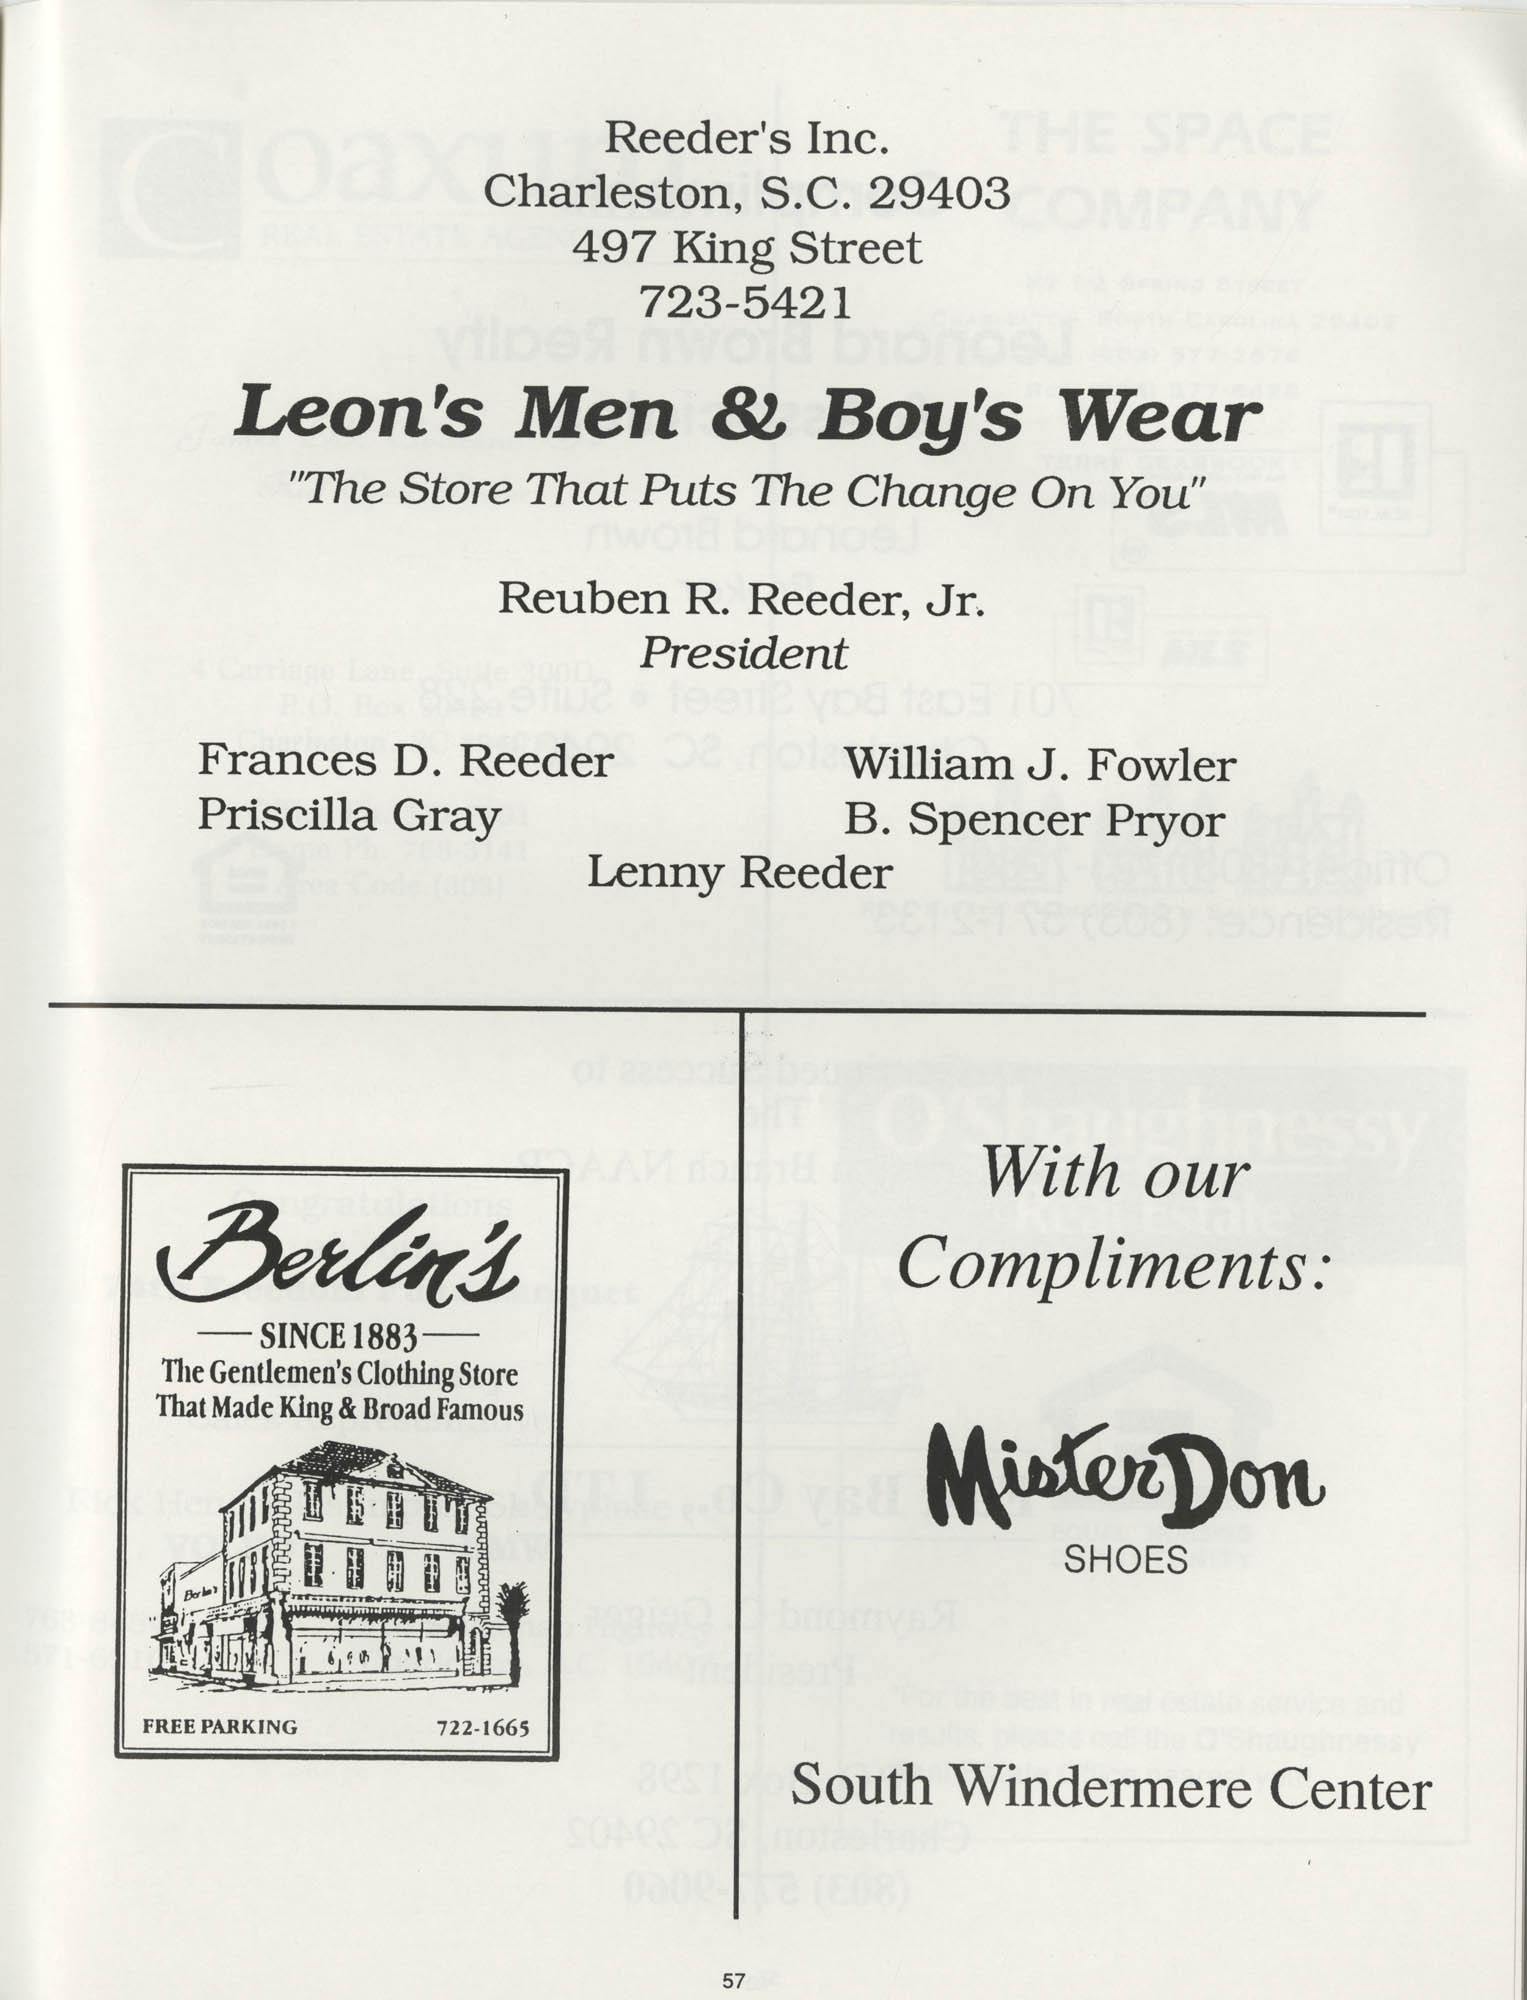 1990 NAACP Freedom Fund Magazine, Charleston Branch of the NAACP, 74th Anniversary, Page 57